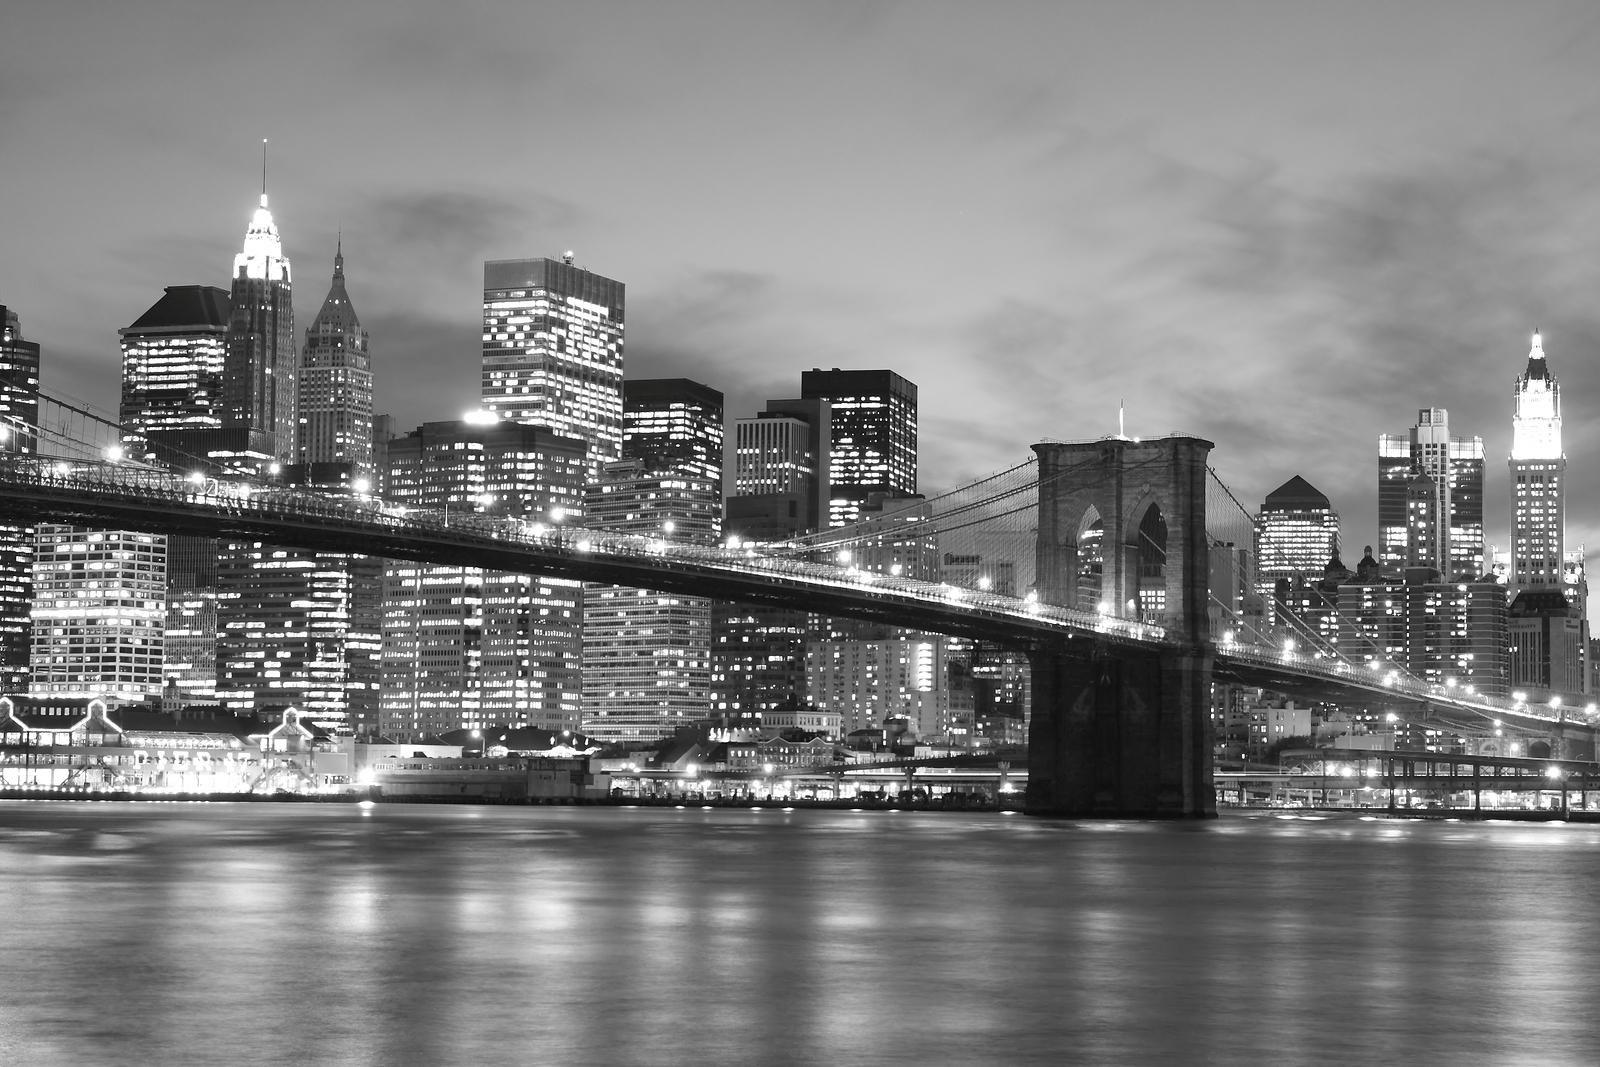 Custom Wall Murals | Wall Stickers, Removable Wallpaper Within Brooklyn Bridge Wall Decals (View 14 of 20)